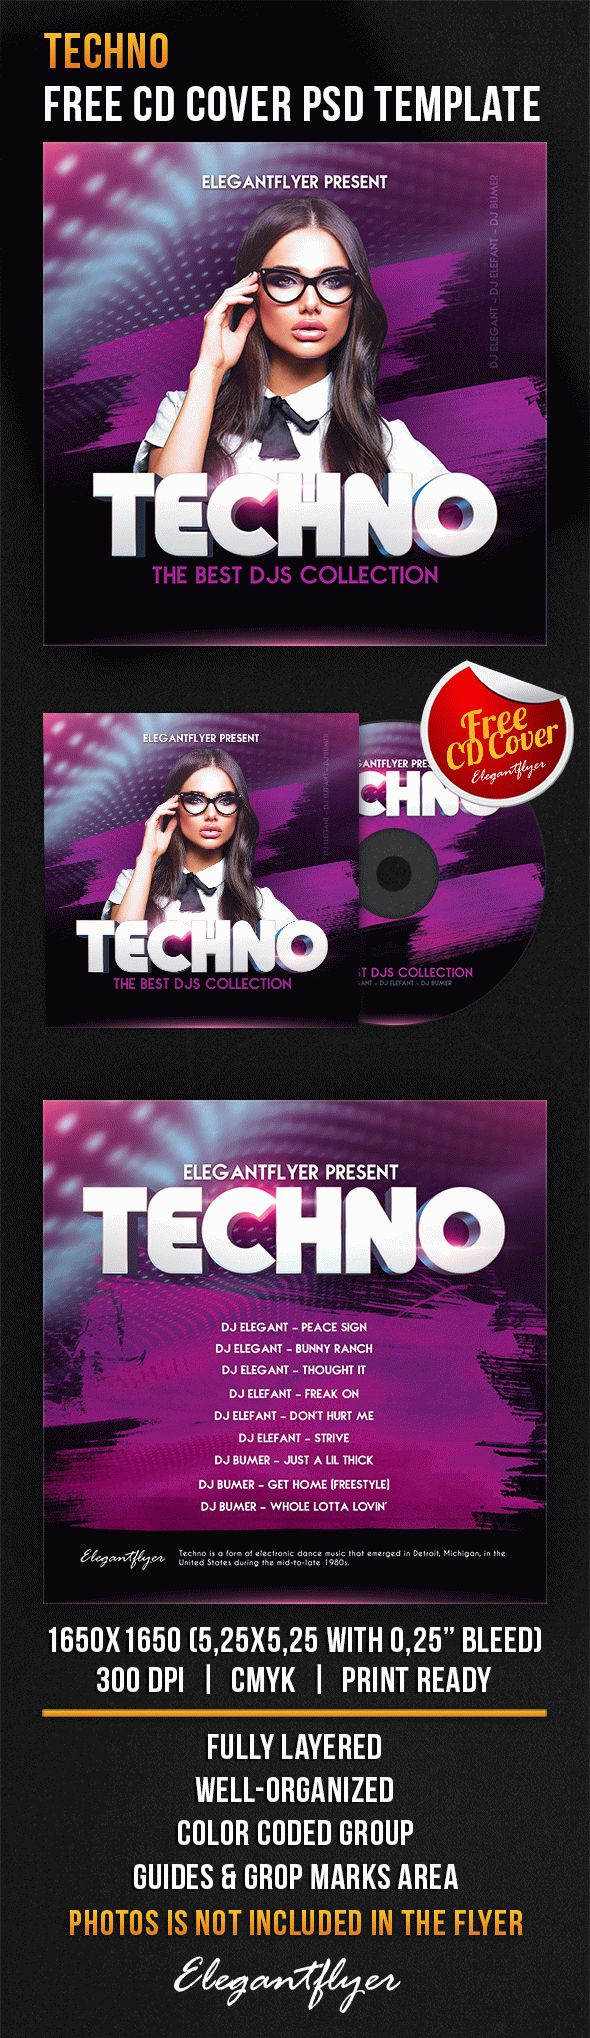 Techno – Free CD Cover PSD Template